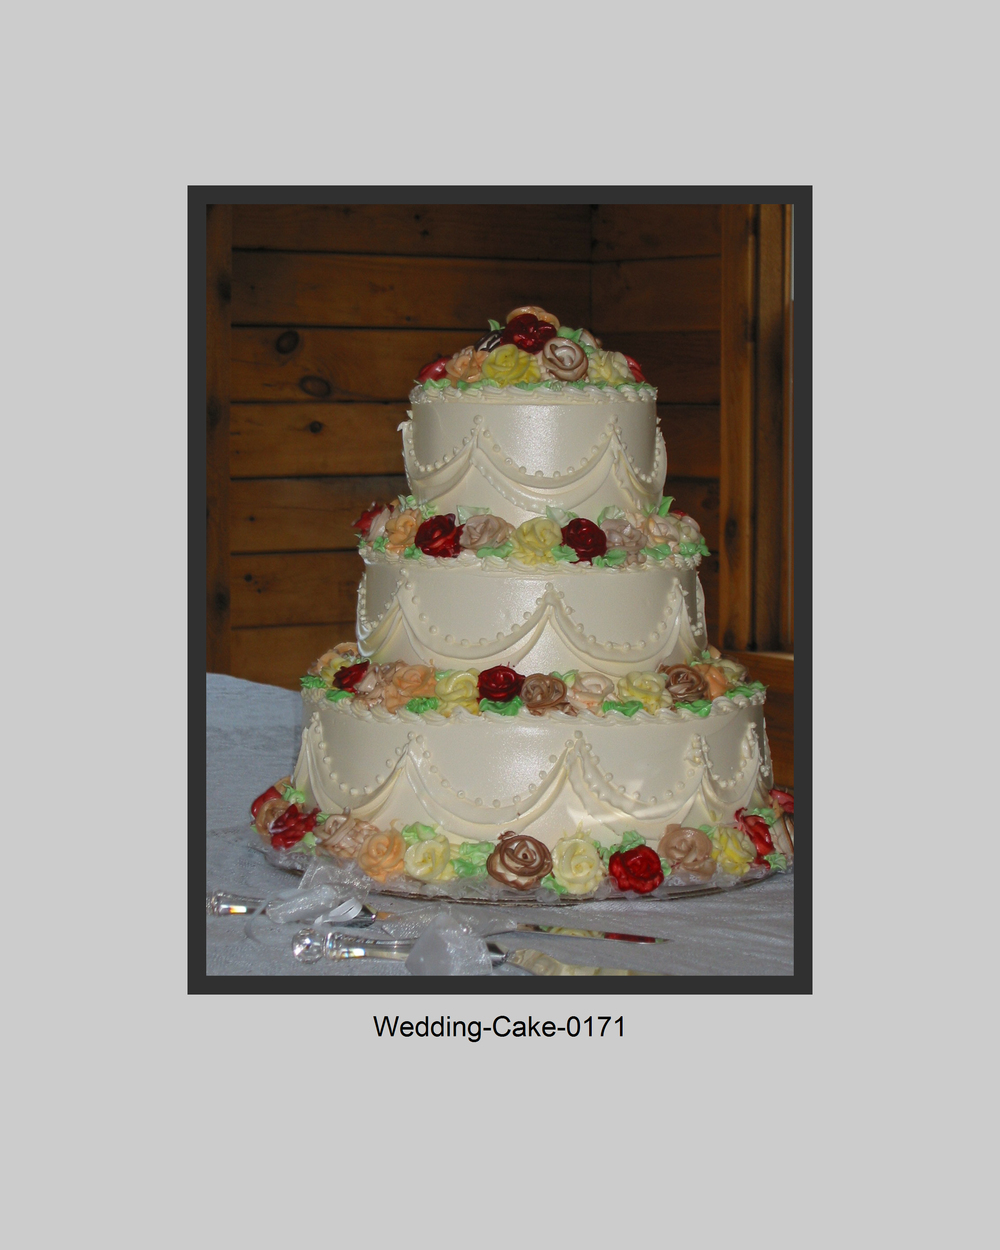 Wedding-Cake-Prints-0171.jpg